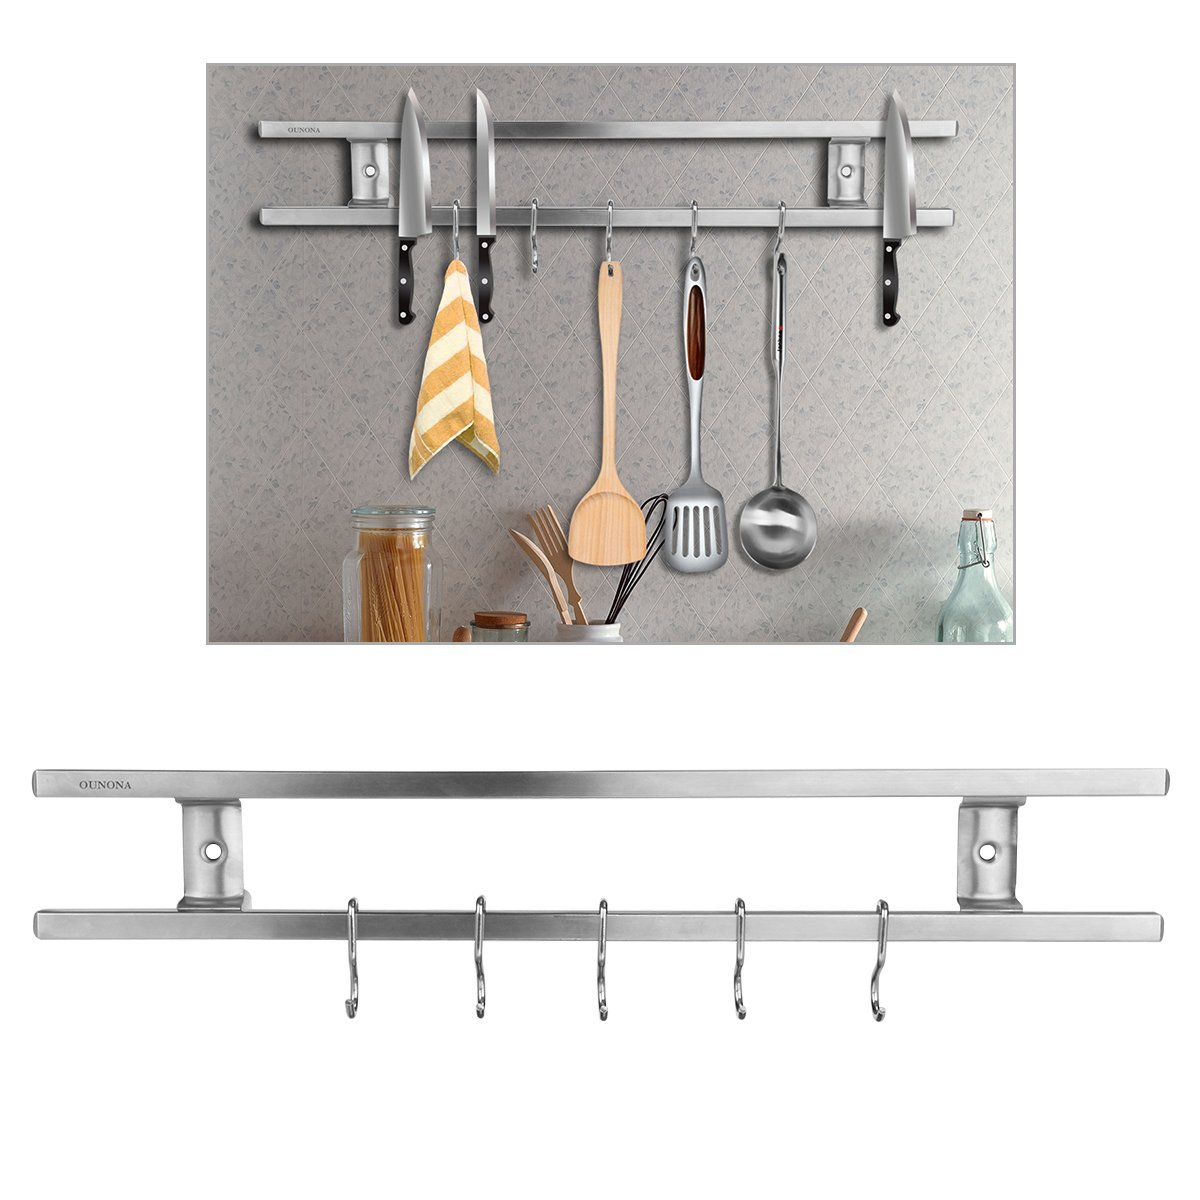 OUNONA Magnetic Knife Holder 16 inch Magnetic Knife Strips Stainless Steel with 6 Removable Hooks by OUNONA